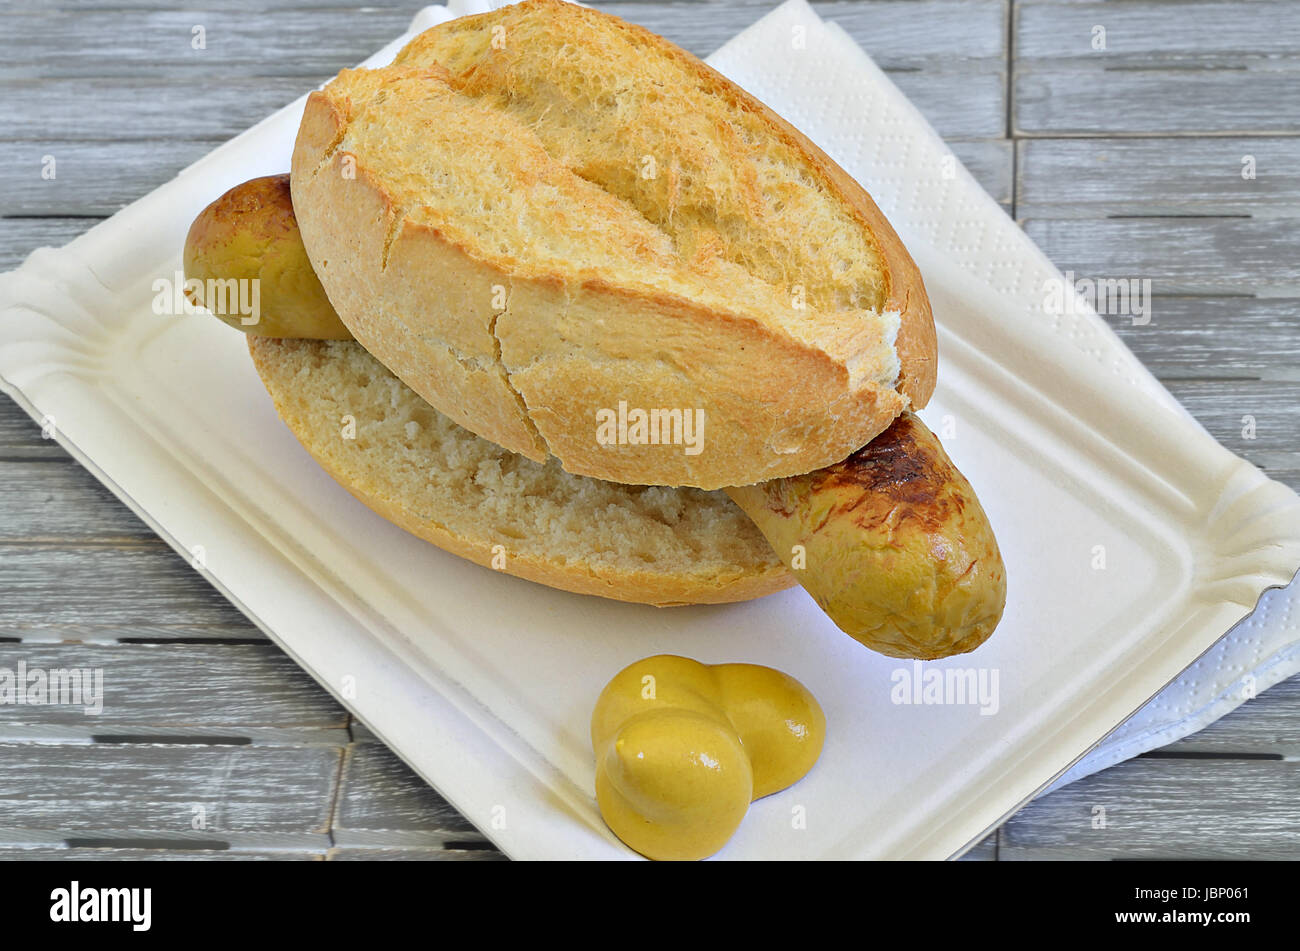 grilled sausage in roll on white paper plate with mustard, close up, macro, full frame, gray background Stock Photo